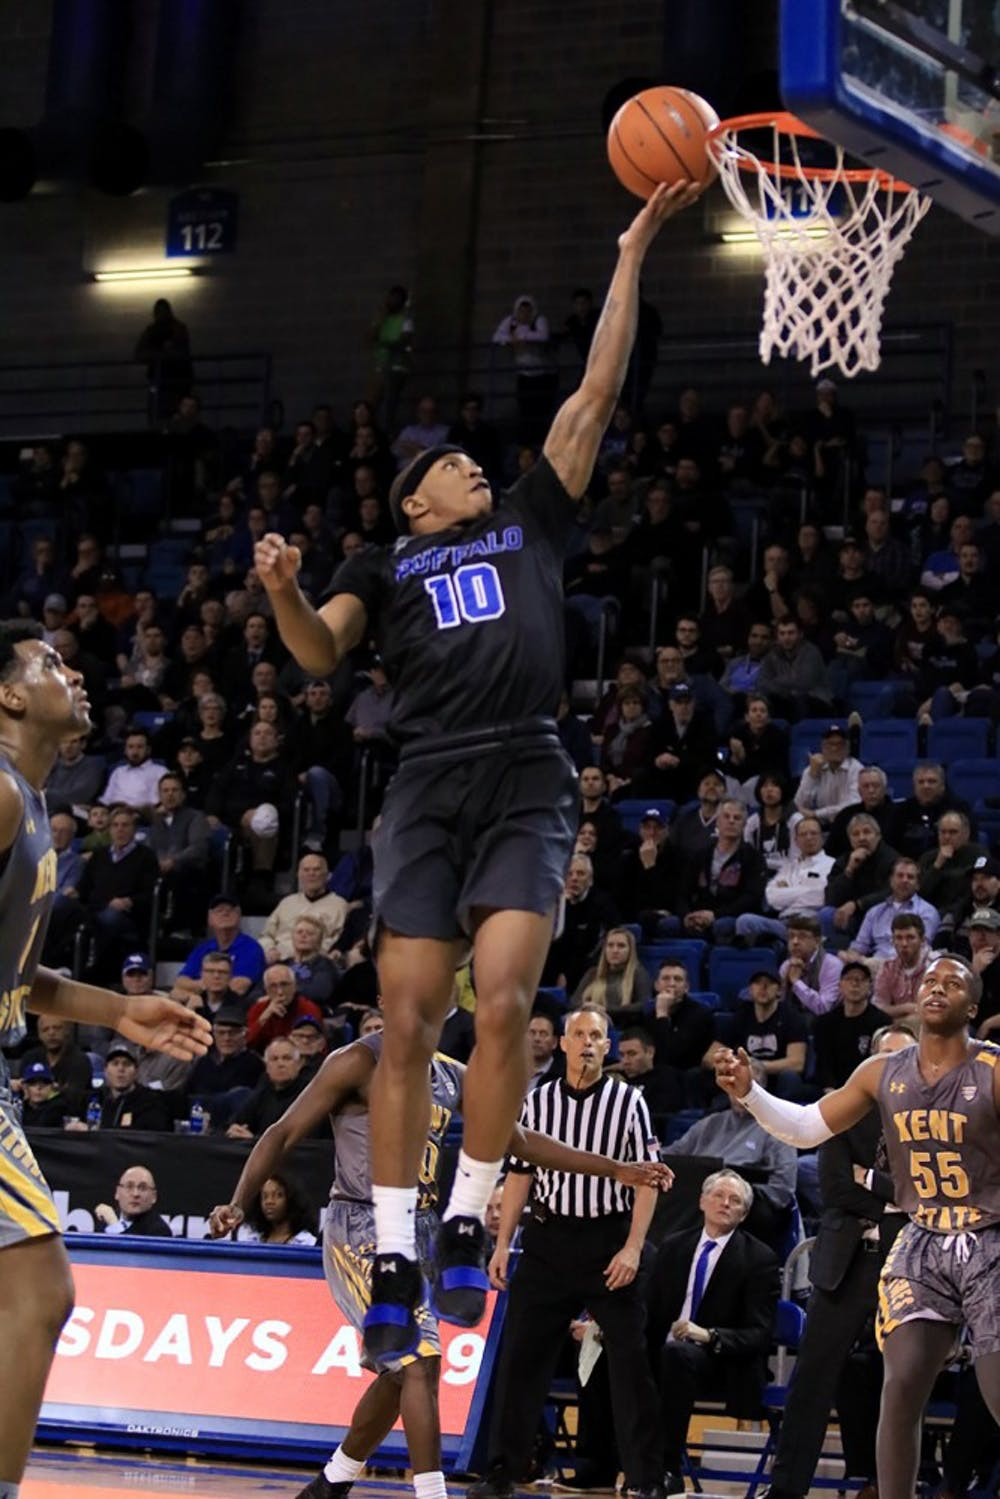 <p>Senior guard Wes Clark going for the layup. The men's basketball team won its first MAC season title Tuesday night.</p>